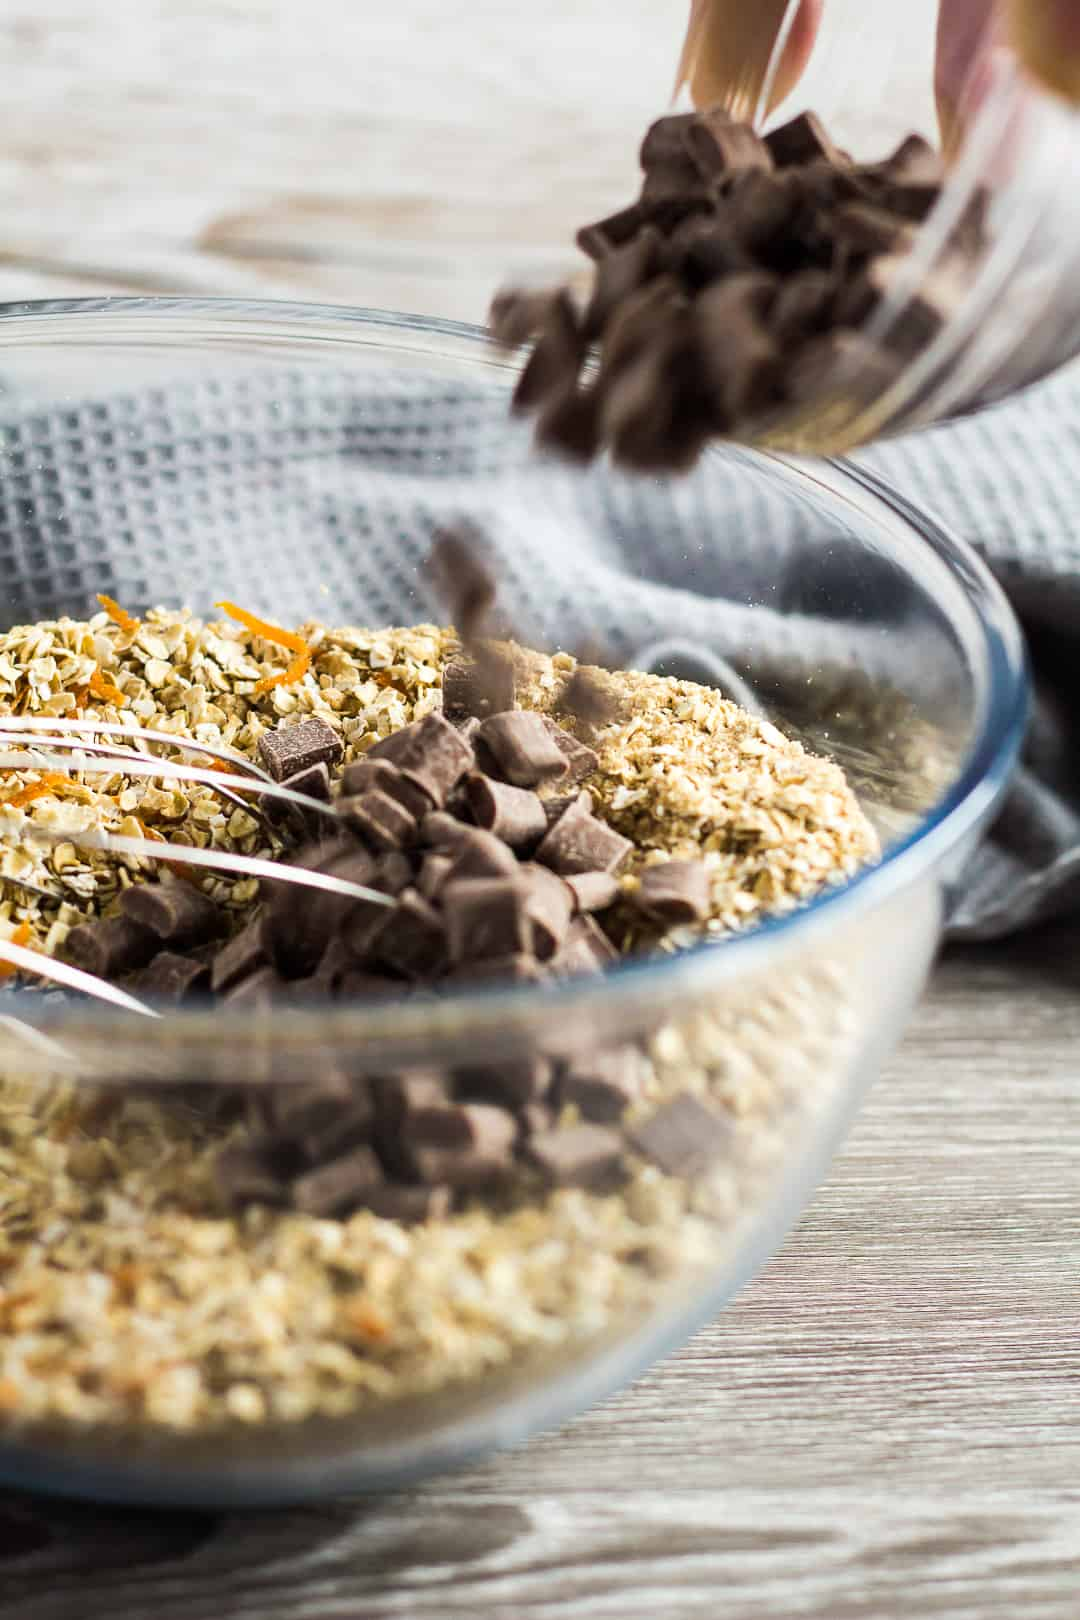 Chocolate chips being added to a glass mixing bowl of ingredients for Hot Cross Bun Spiced Flapjacks.